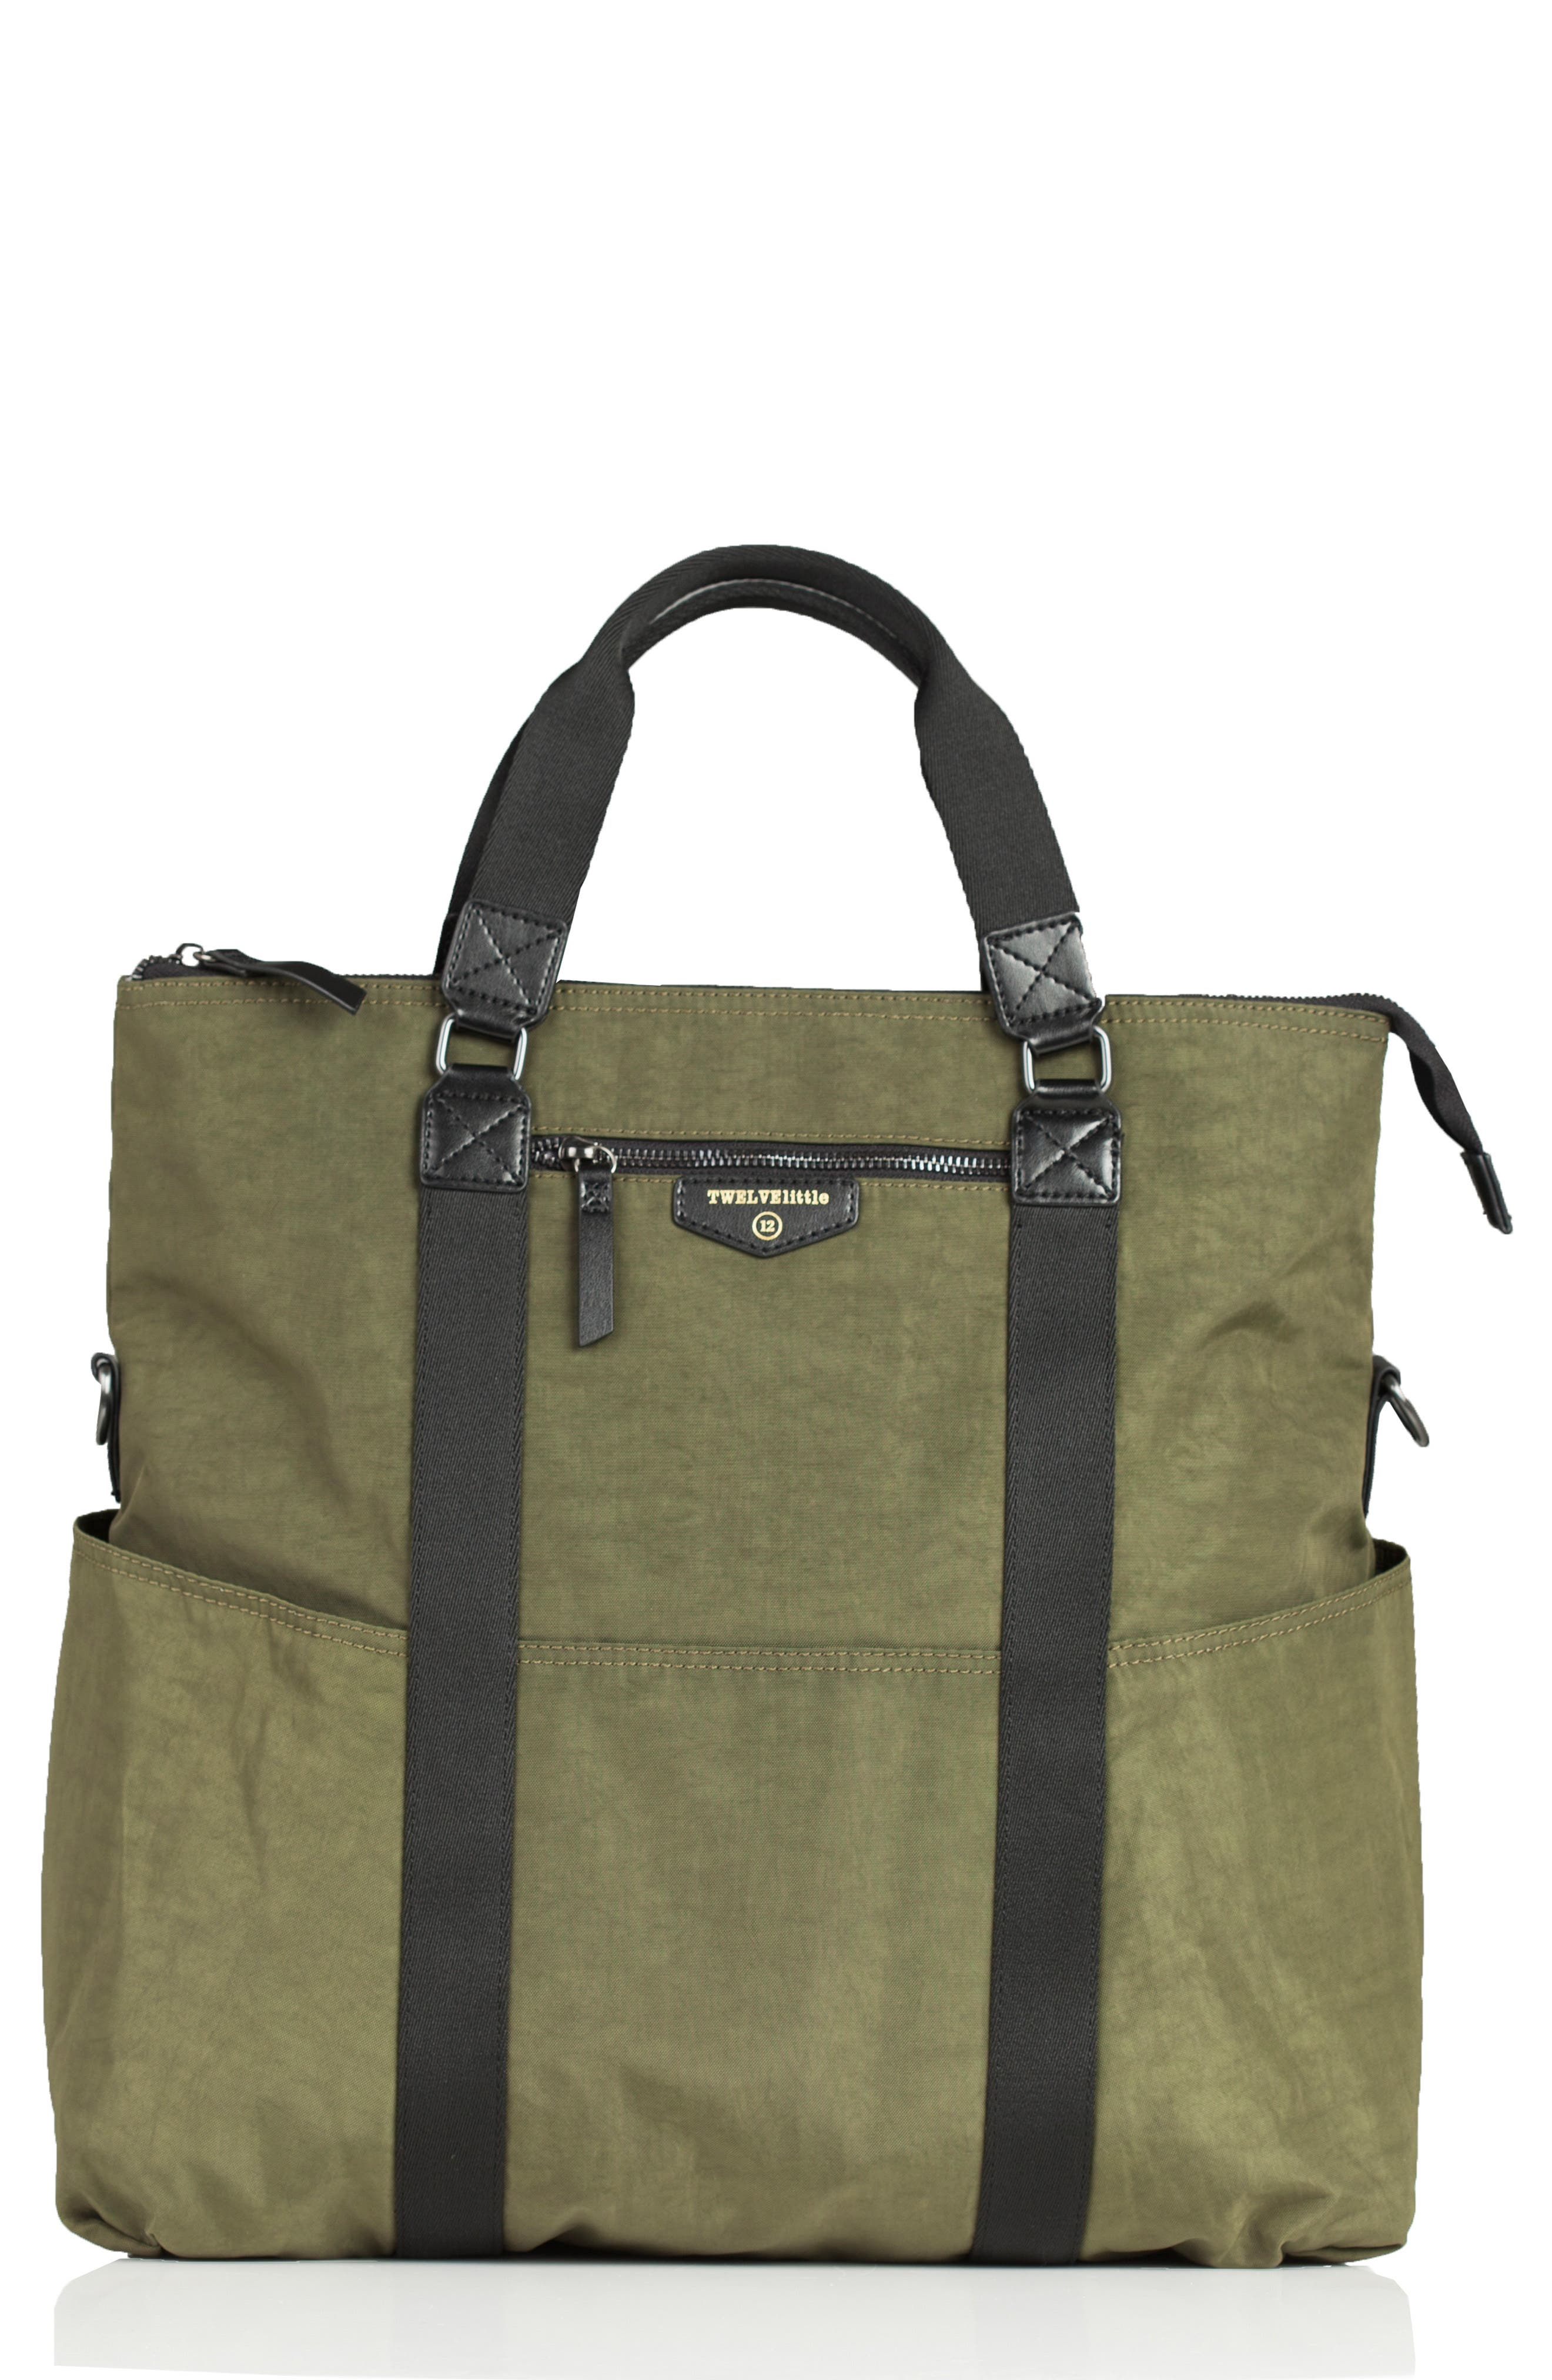 3-in-1 Foldover Diaper Tote,                         Main,                         color, Olive